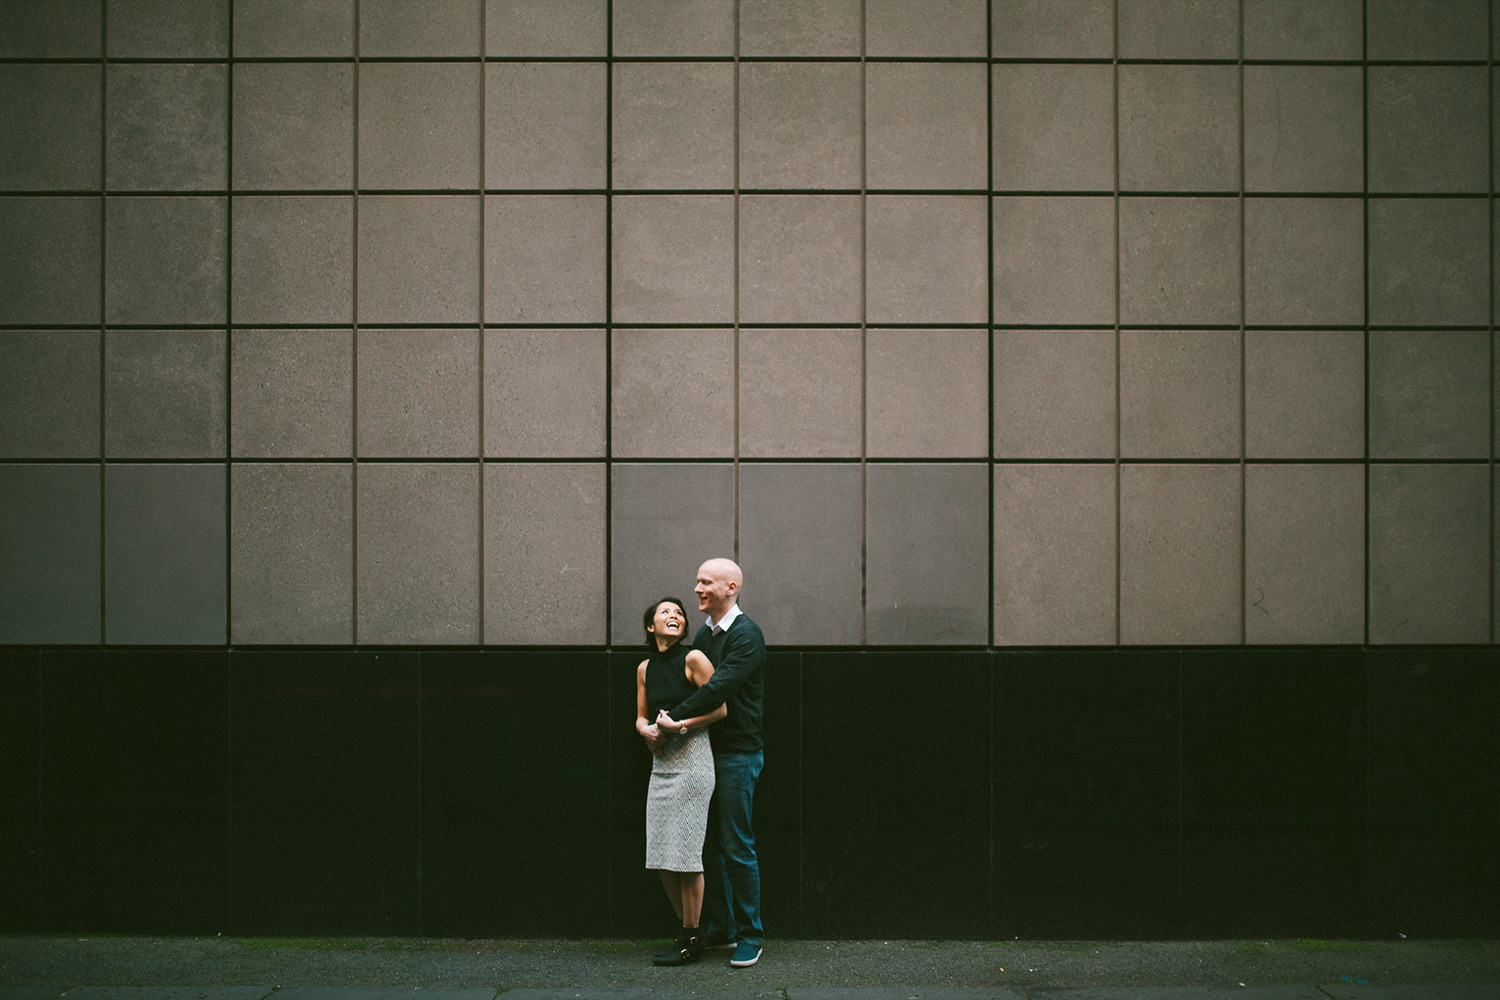 Elaine-Stephen-Engagement-Melbourne-Quirky-Urban-Engagement-Session-Wedding-Photography-23